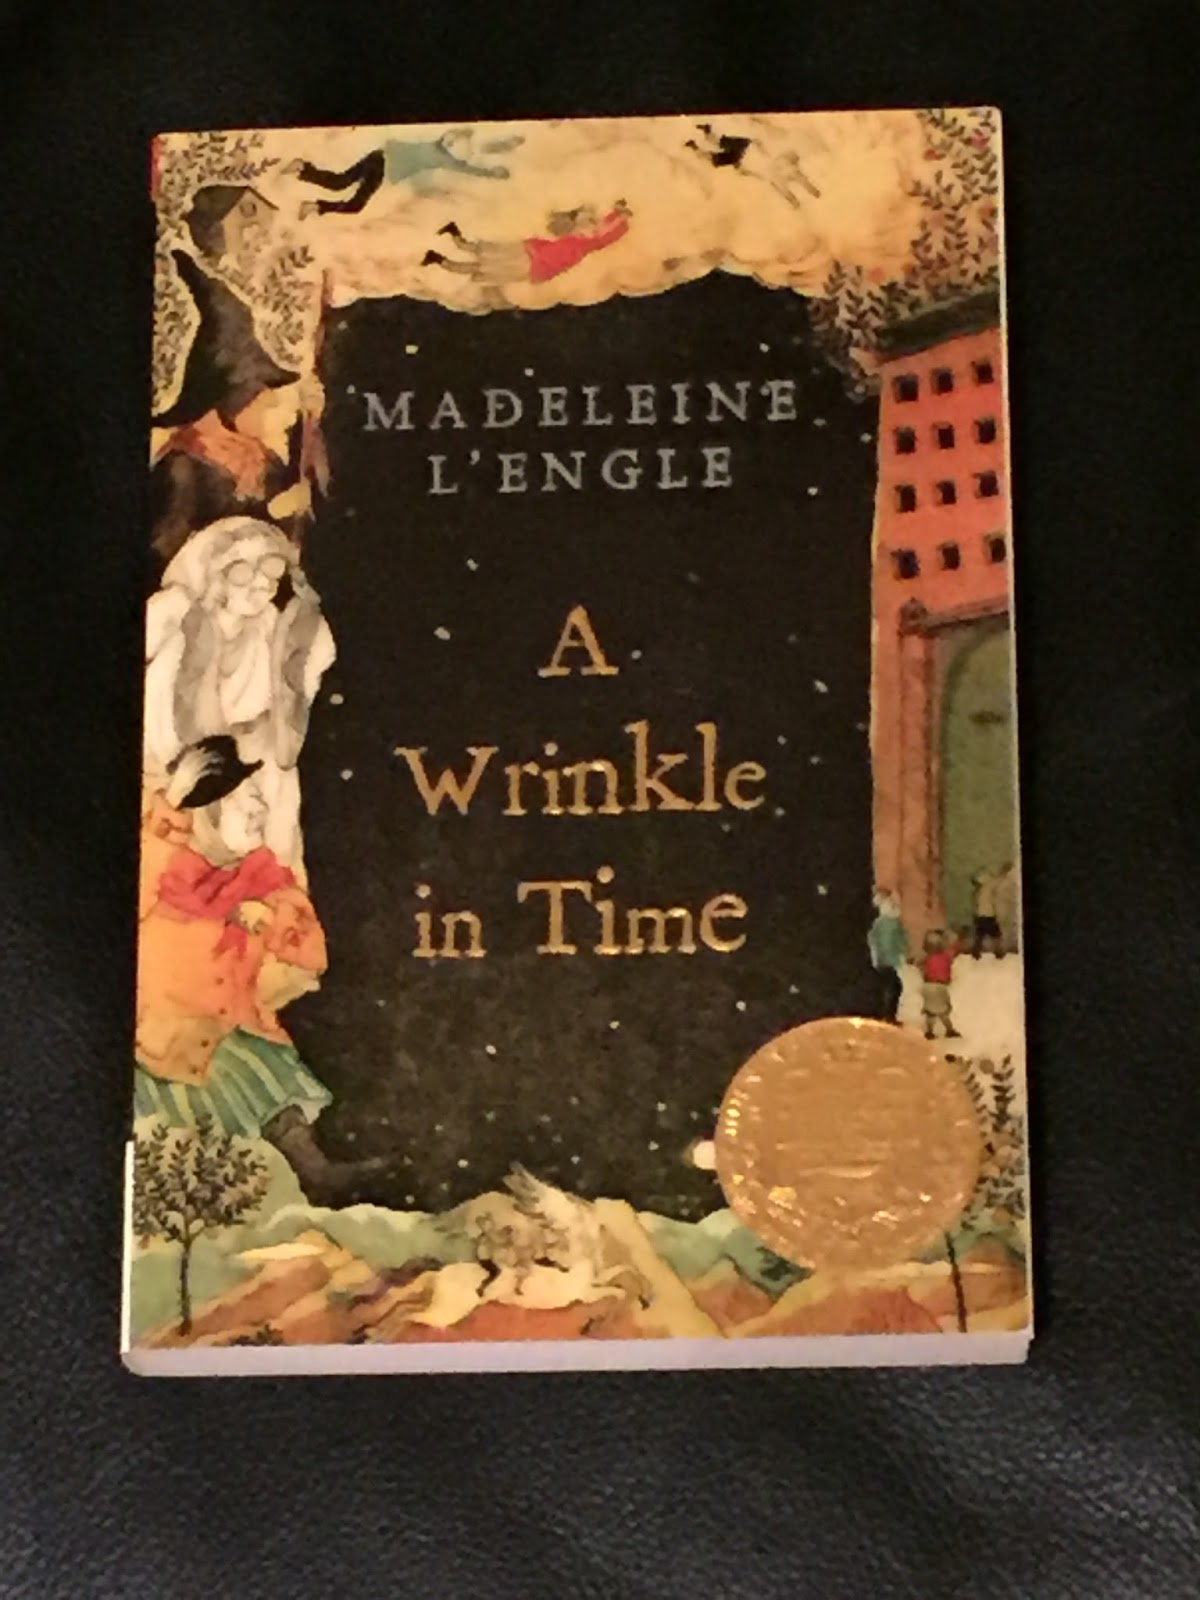 madeleine lengles a wrinkle in time A wrinkle in time it was a dark and stormy night meg murry, her small brother charles wallace, and her mother had come down to the kitchen for a midnight snack when they were upset by the arrival of a most disturbing stranger.